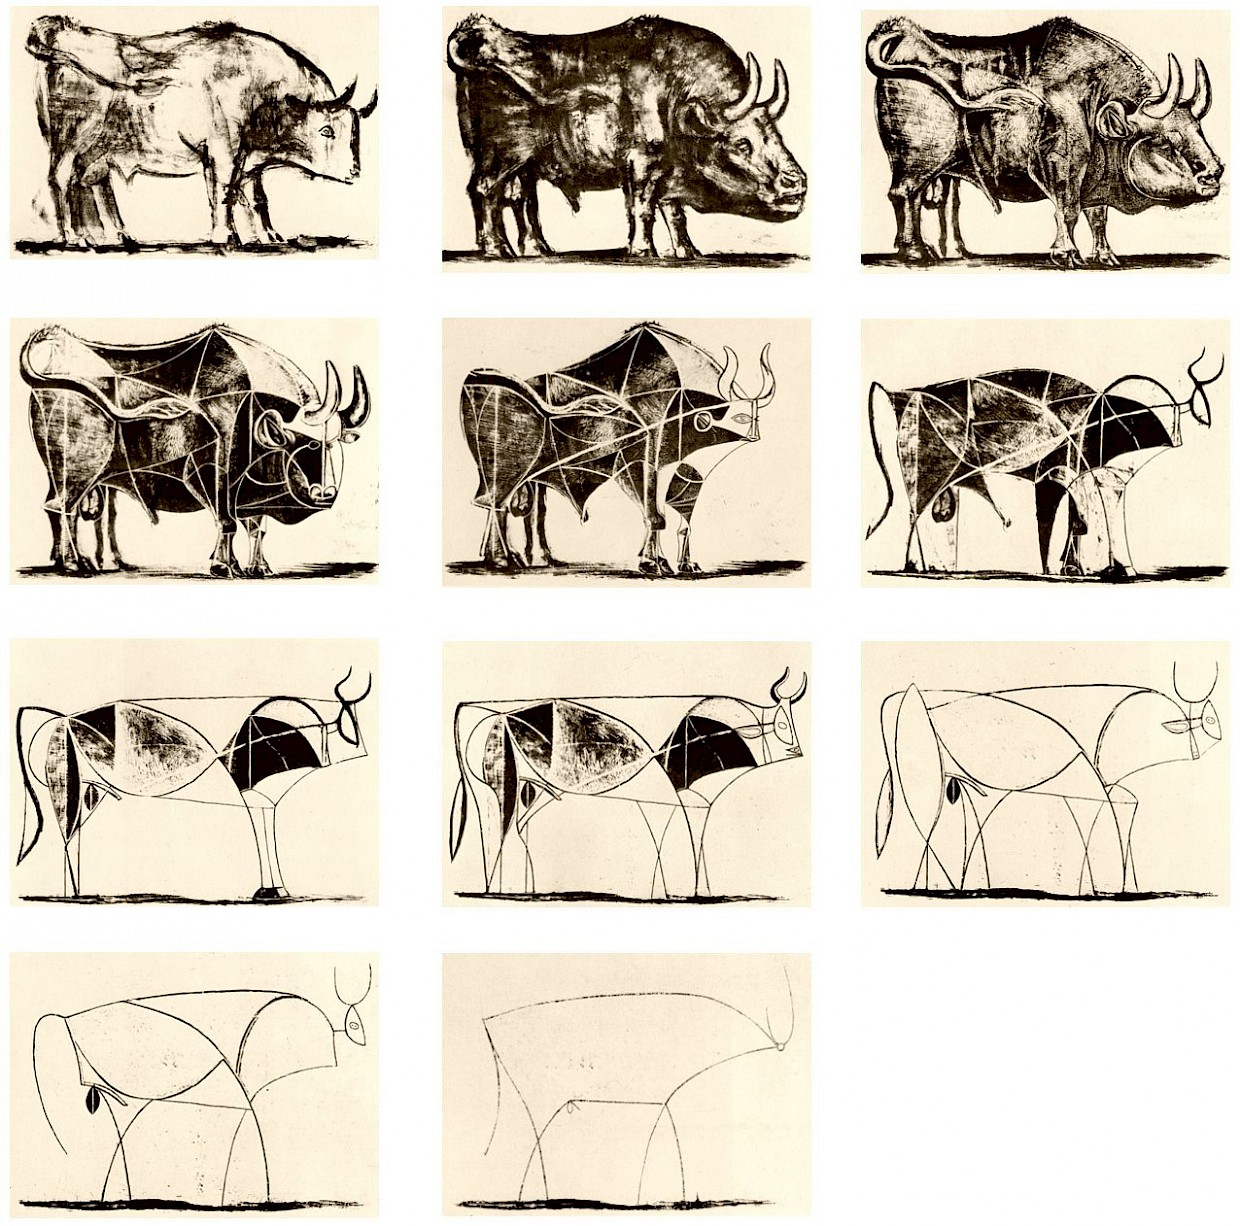 Pablo Picasso, Lithographs from The Bull, 1945-1946